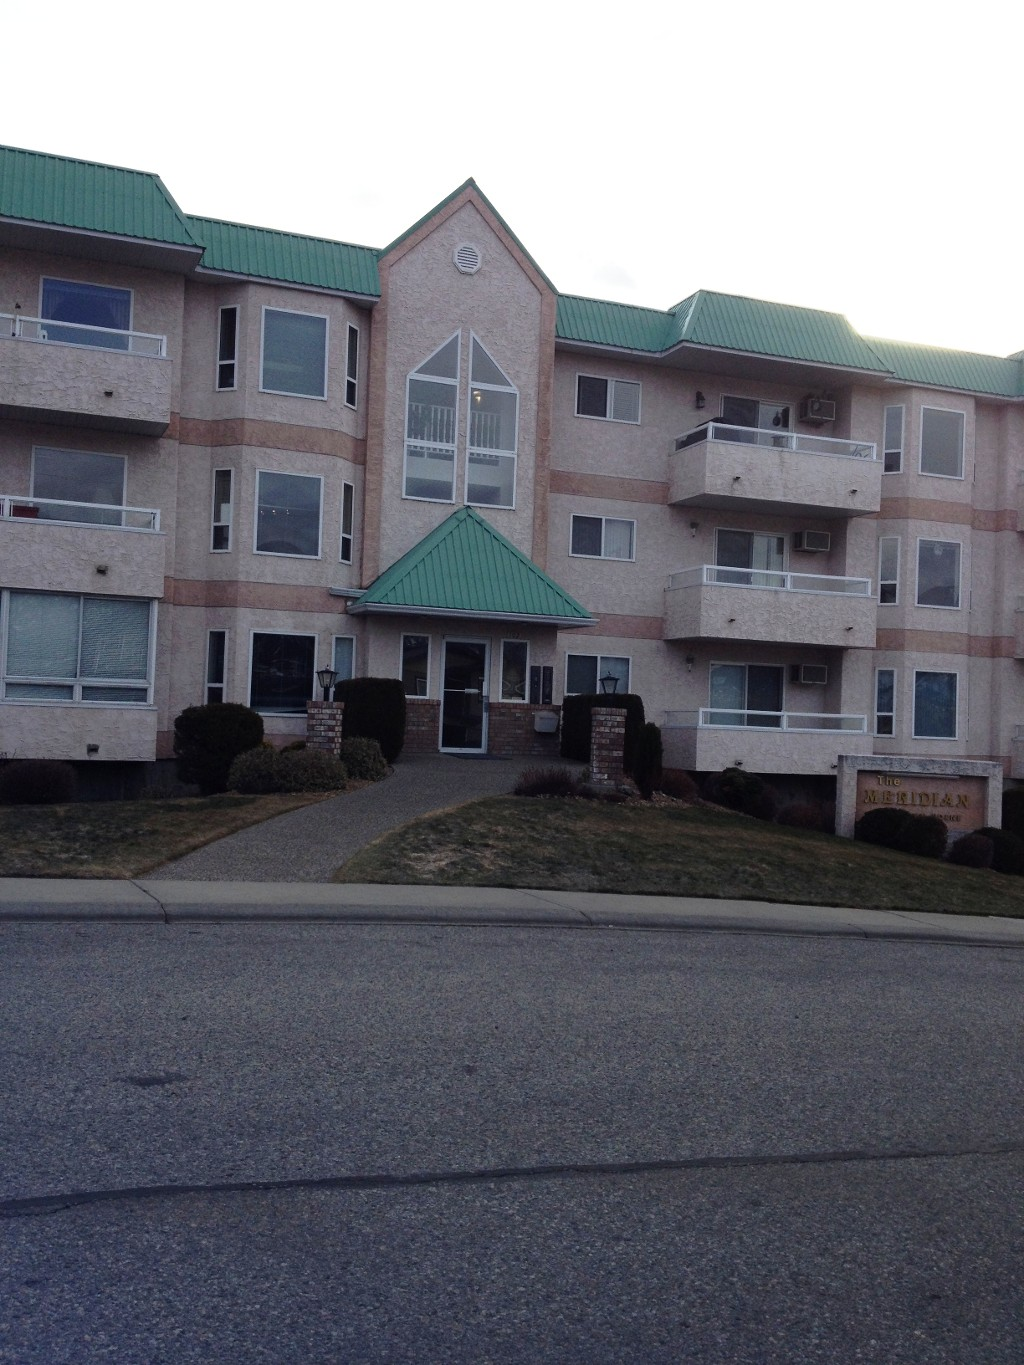 Main Photo: 104 102 Van Horne Street in Penticton: Main North Multifamily for sale : MLS® # 141473